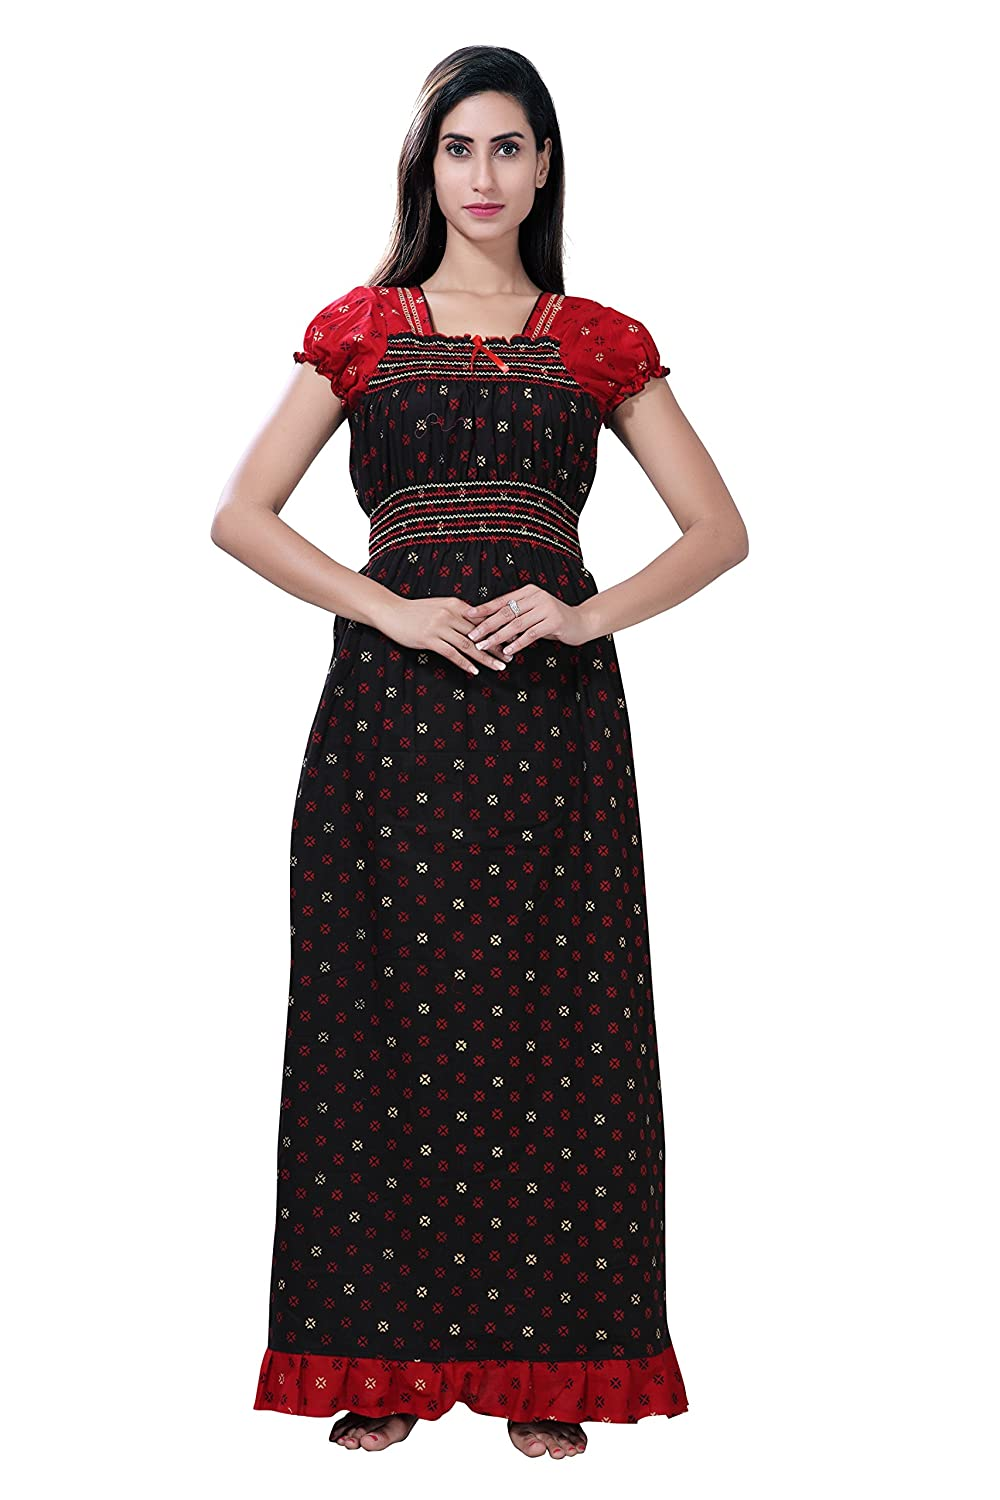 c8ee81d4e0 TUCUTE Women s Cotton Smoking Black   Red Rounds Printed Nighty Nightgown Nightdress Nightwear  (Black) 1678  Amazon.in  Clothing   Accessories